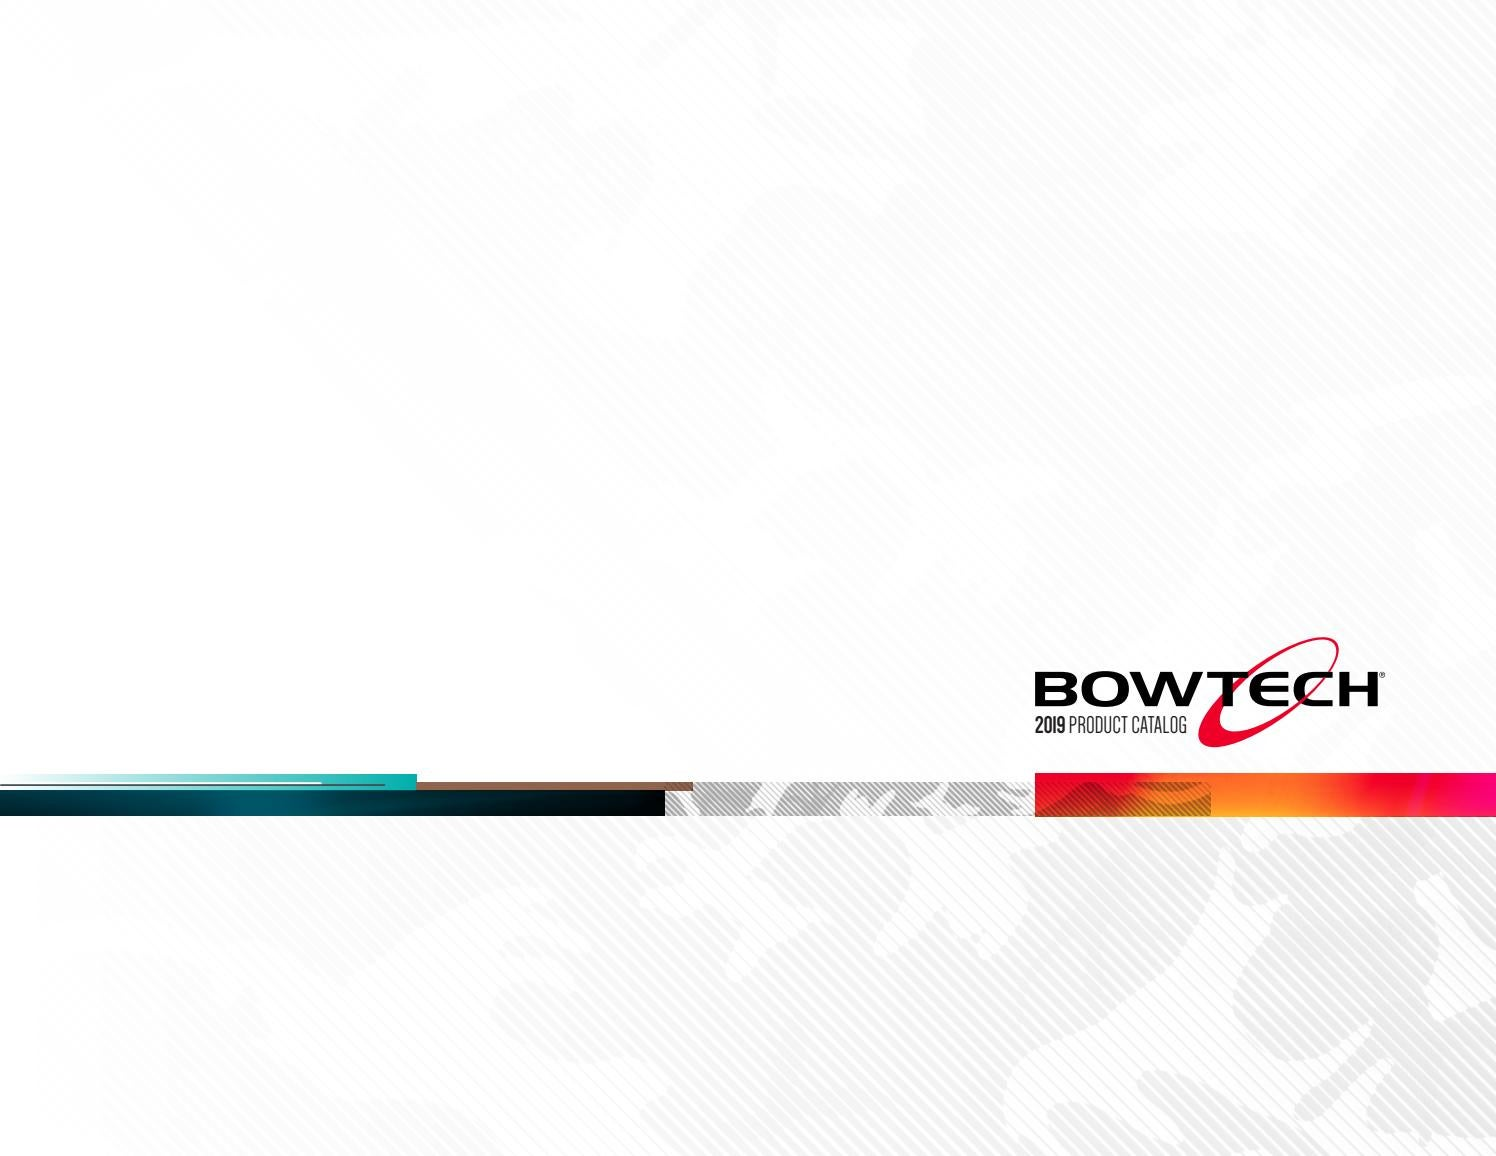 Bowtech 2019 Catalog by Bowtech Archery - issuu